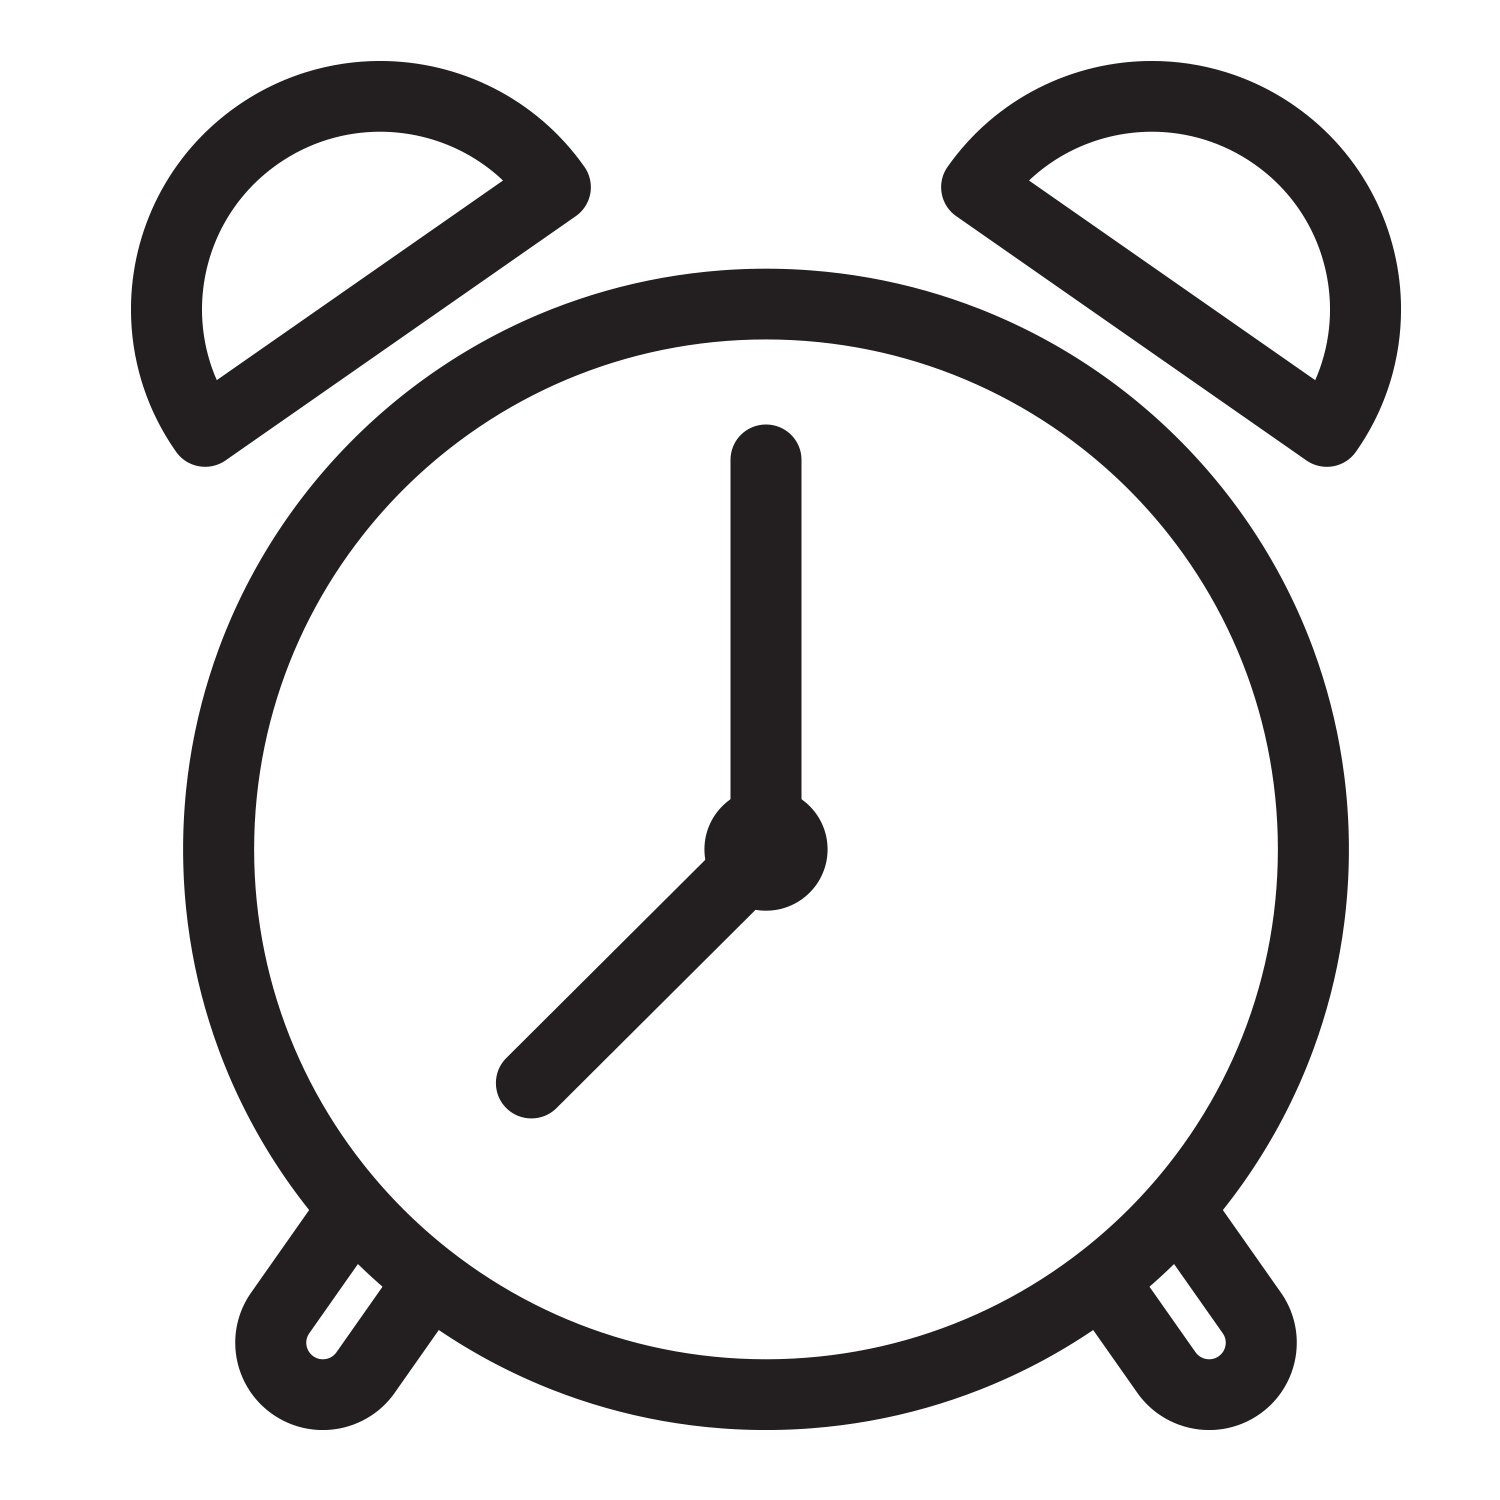 Clock Icon, learn more about the project timeline